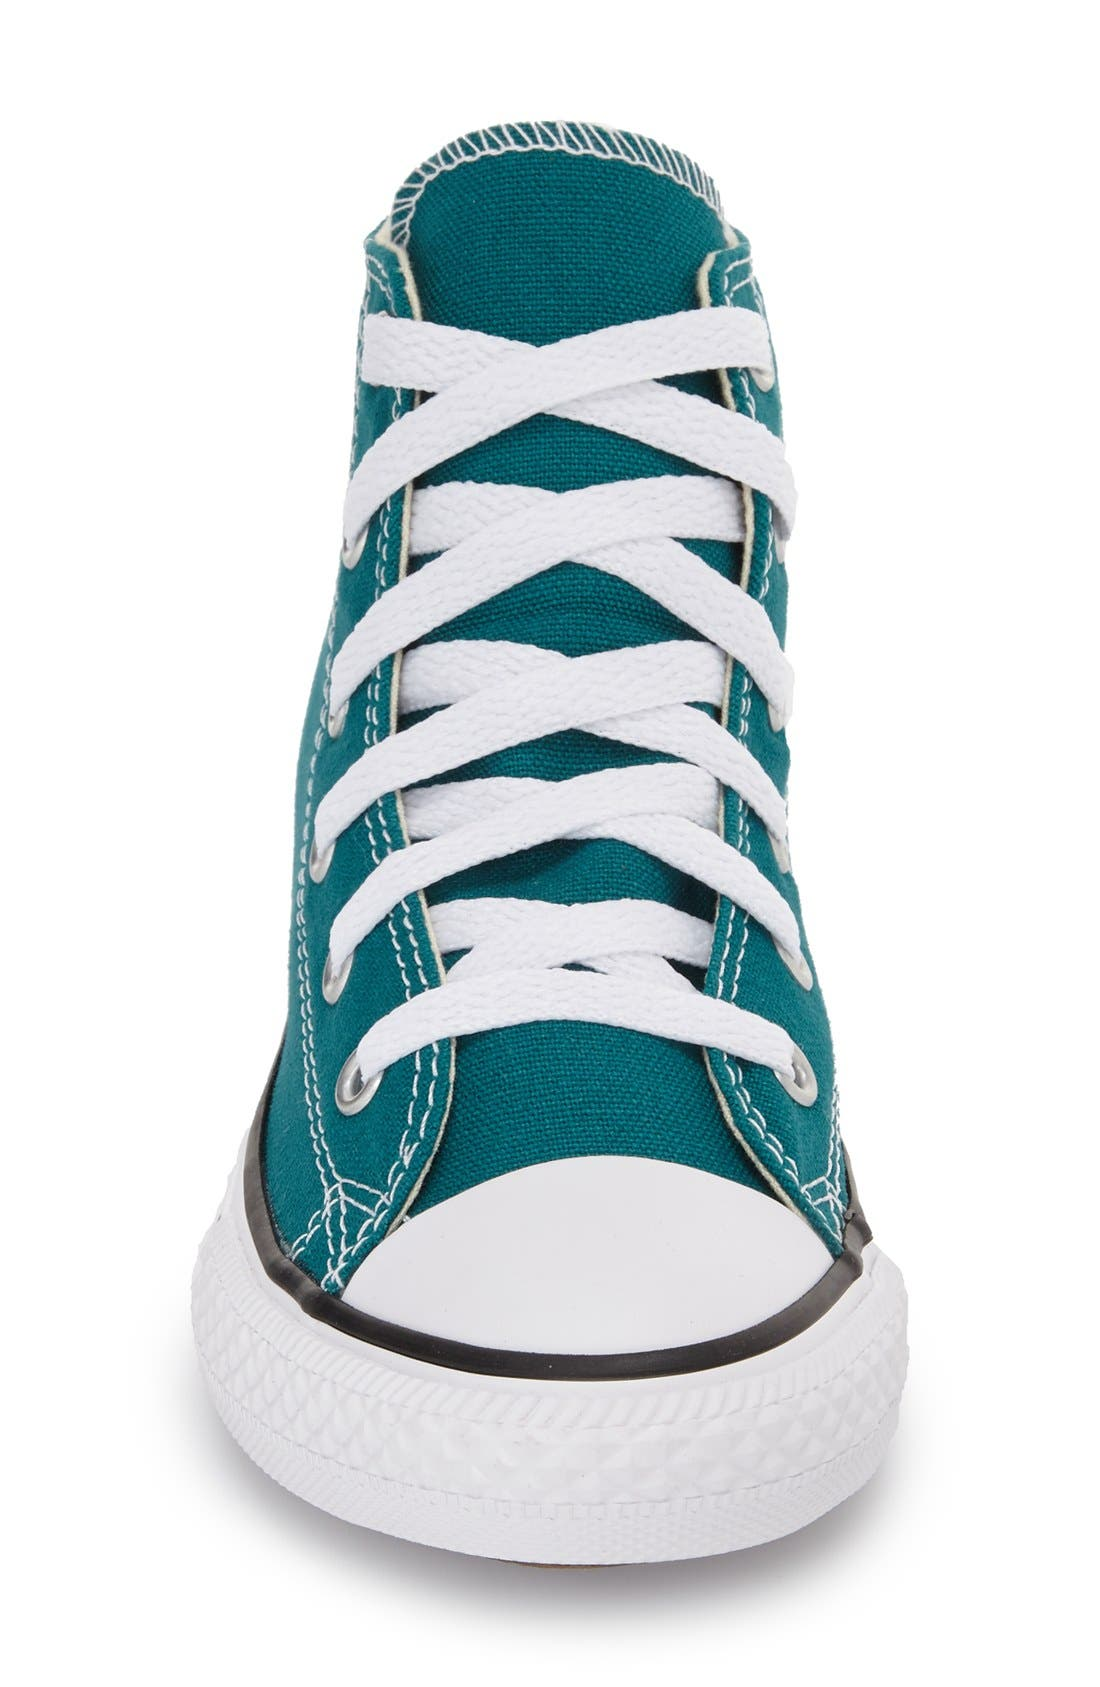 Chuck Taylor<sup>®</sup> All Star<sup>®</sup> 'Madison' High Top Sneaker,                             Alternate thumbnail 3, color,                             469